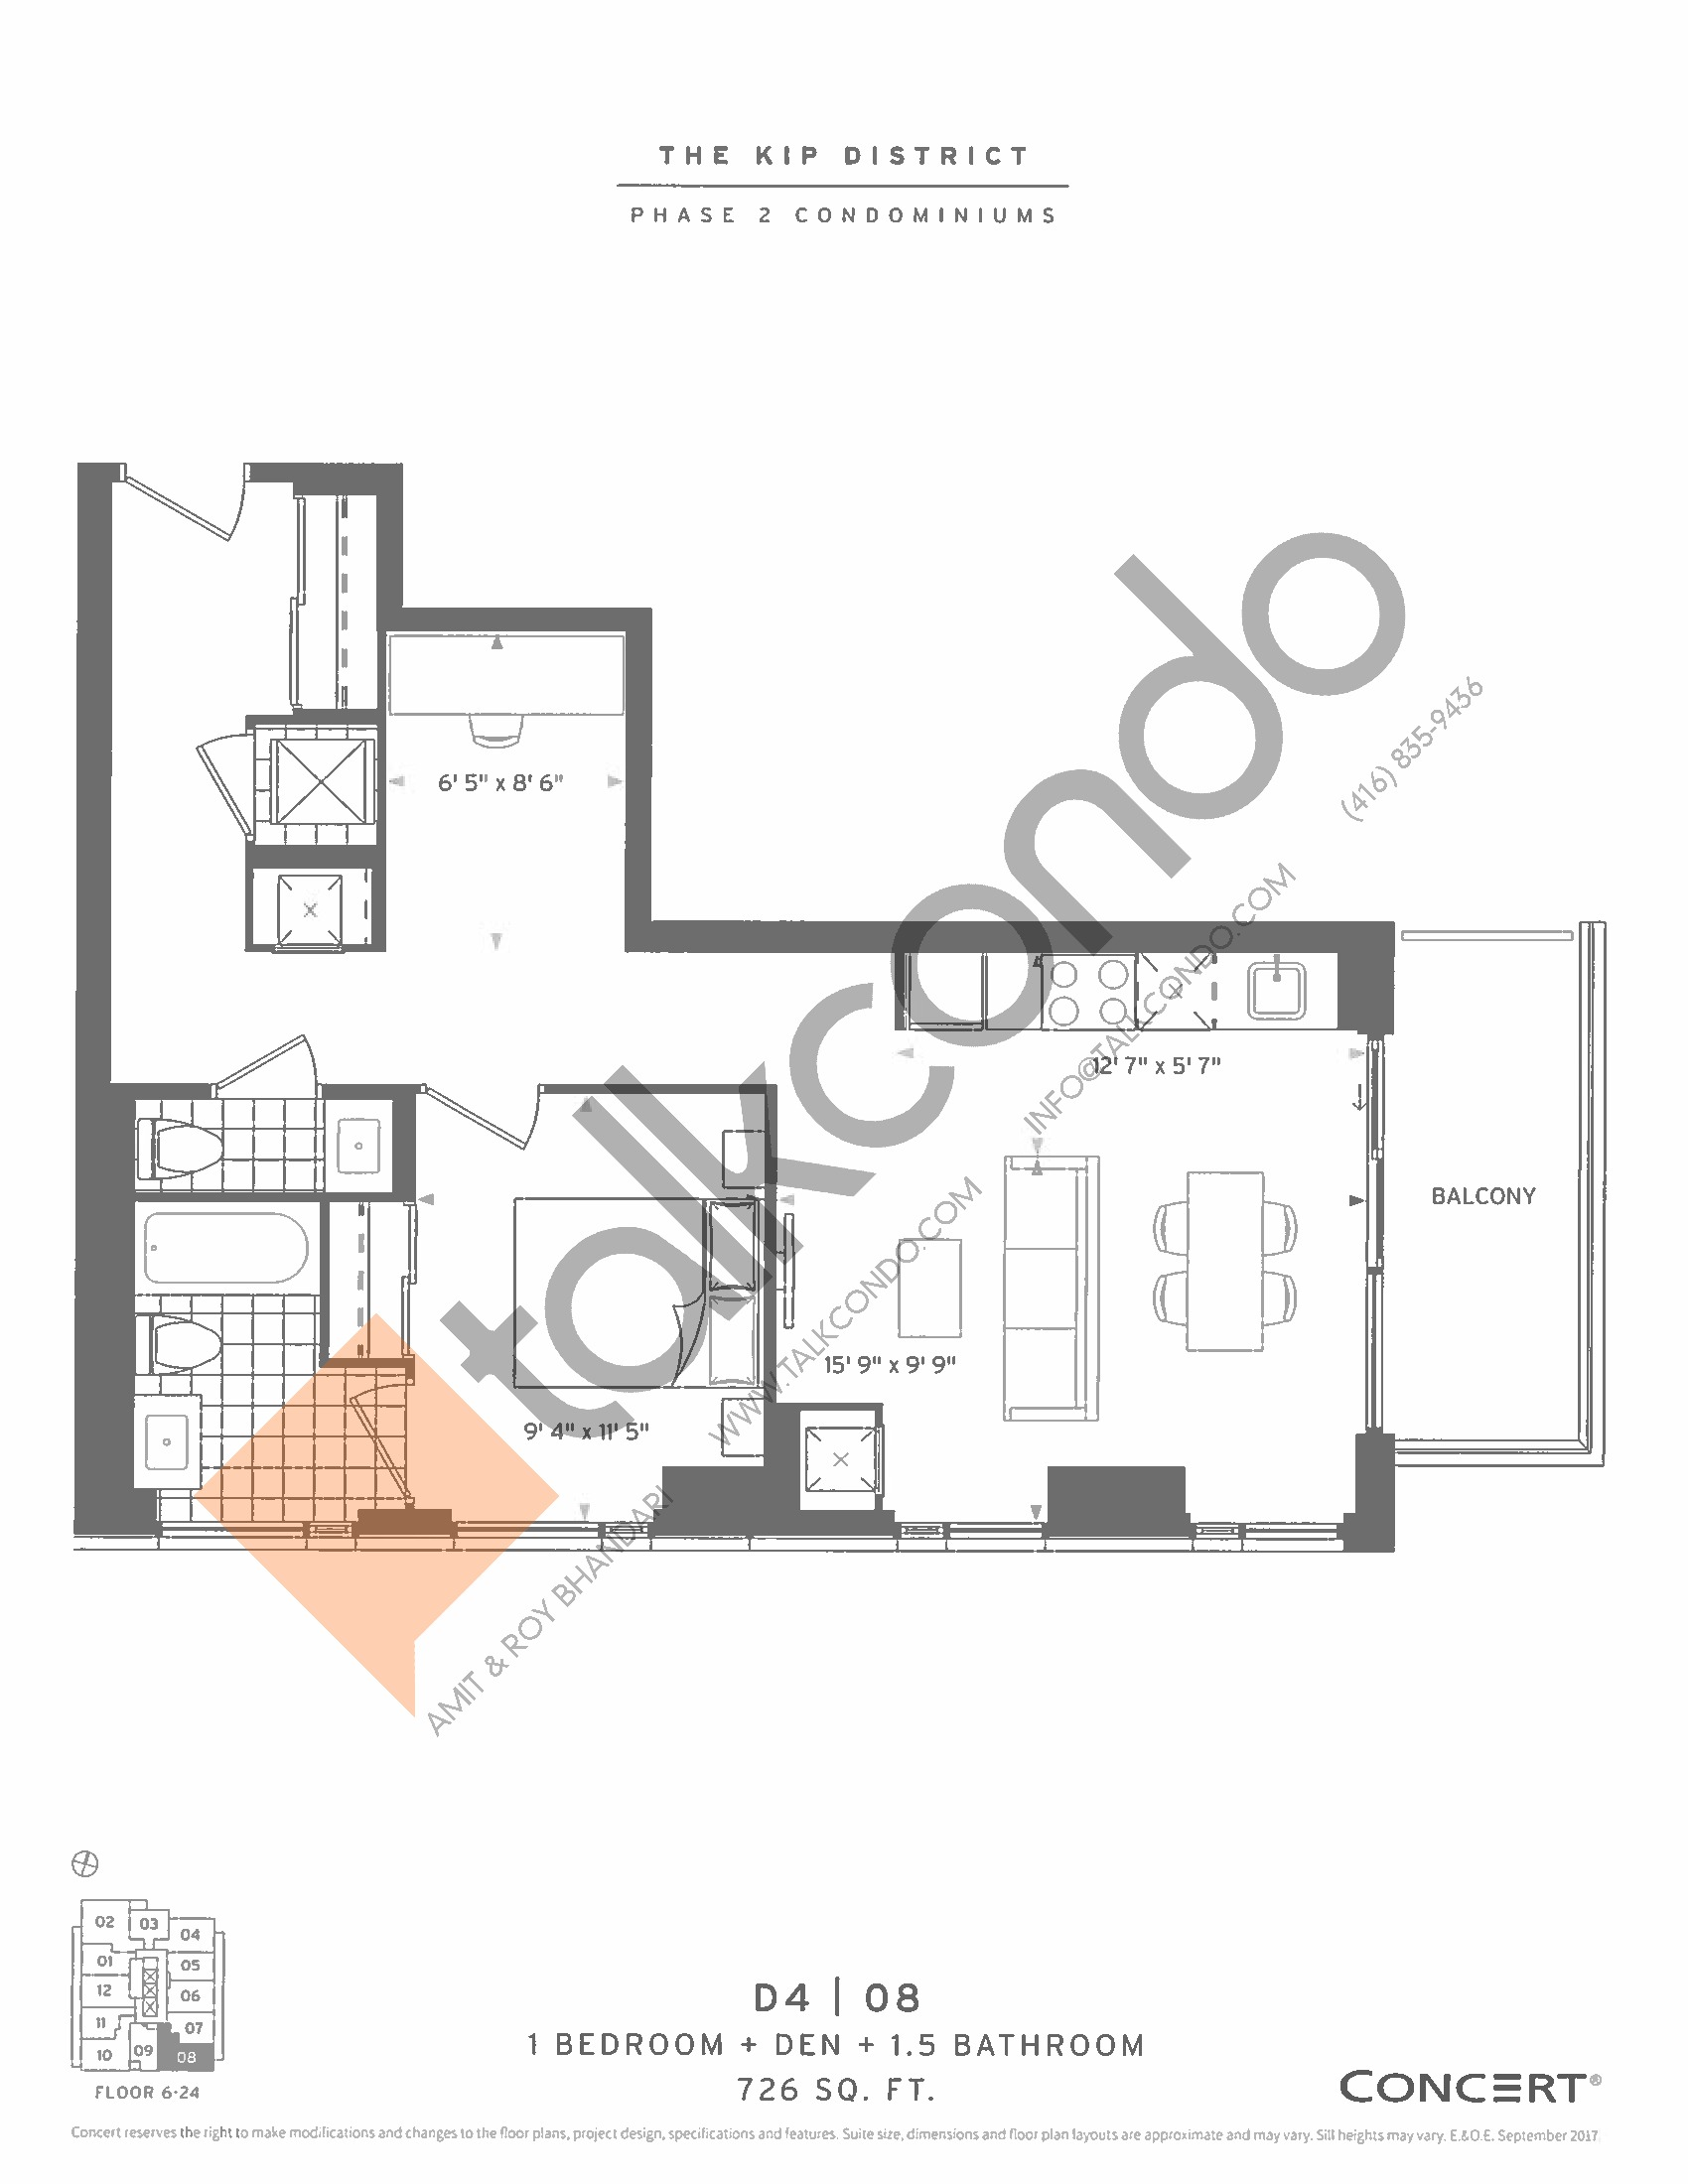 D4 | 08 Floor Plan at The Kip District Phase 2 Condos - 726 sq.ft